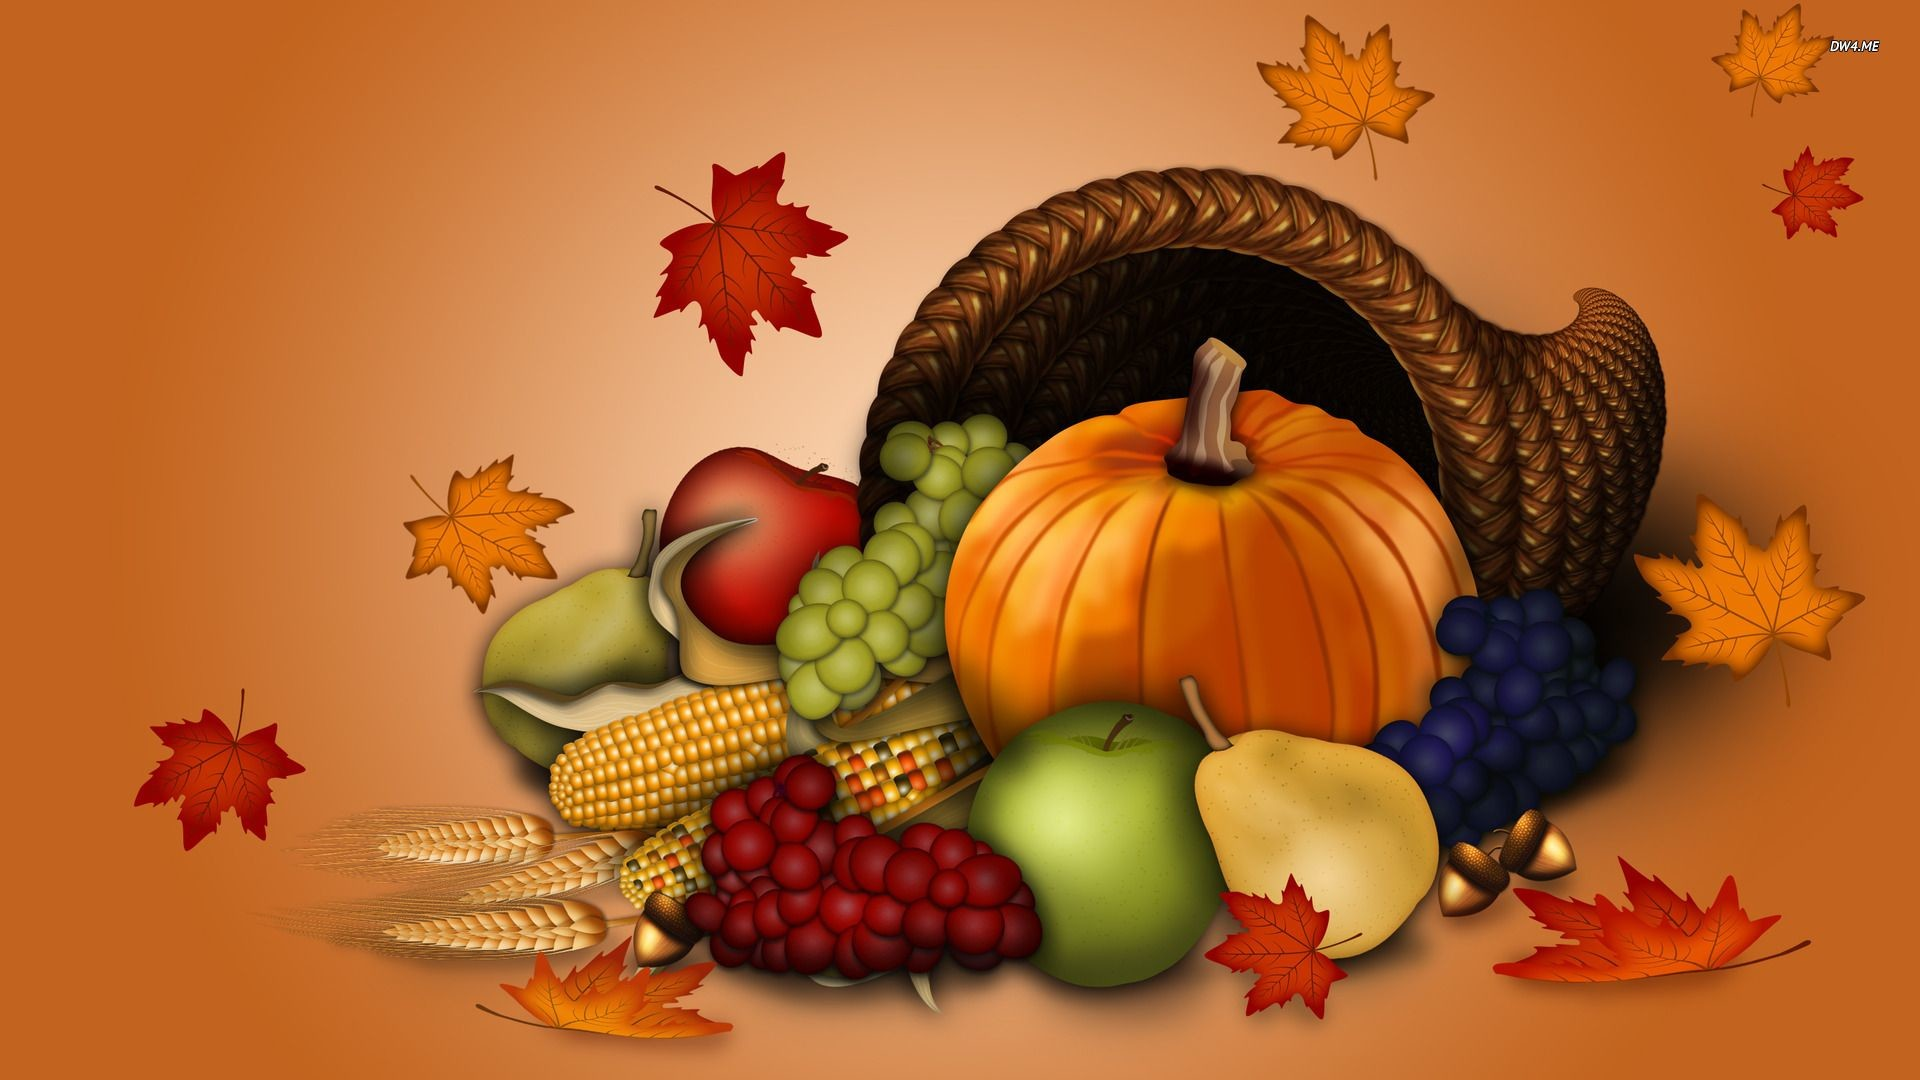 Disney Thanksgiving Wallpapers (63+ background pictures)